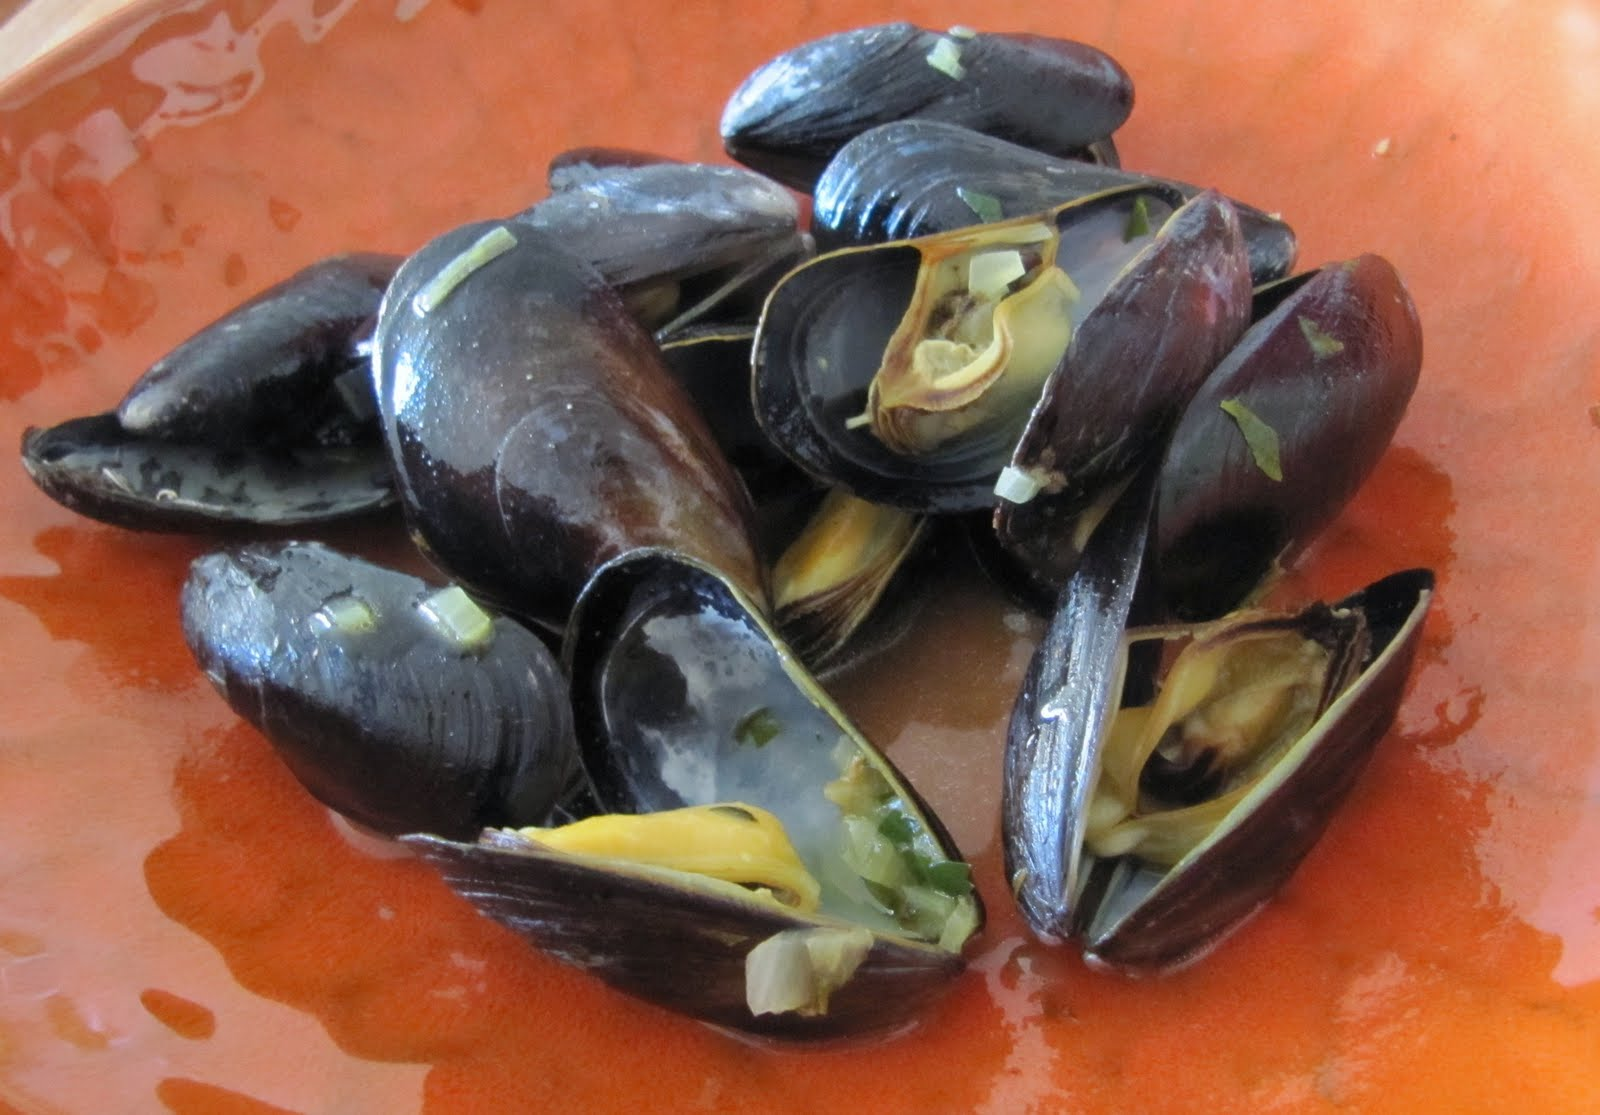 with mussels and red wine mar in ara sauce spaghetti with mussels ...